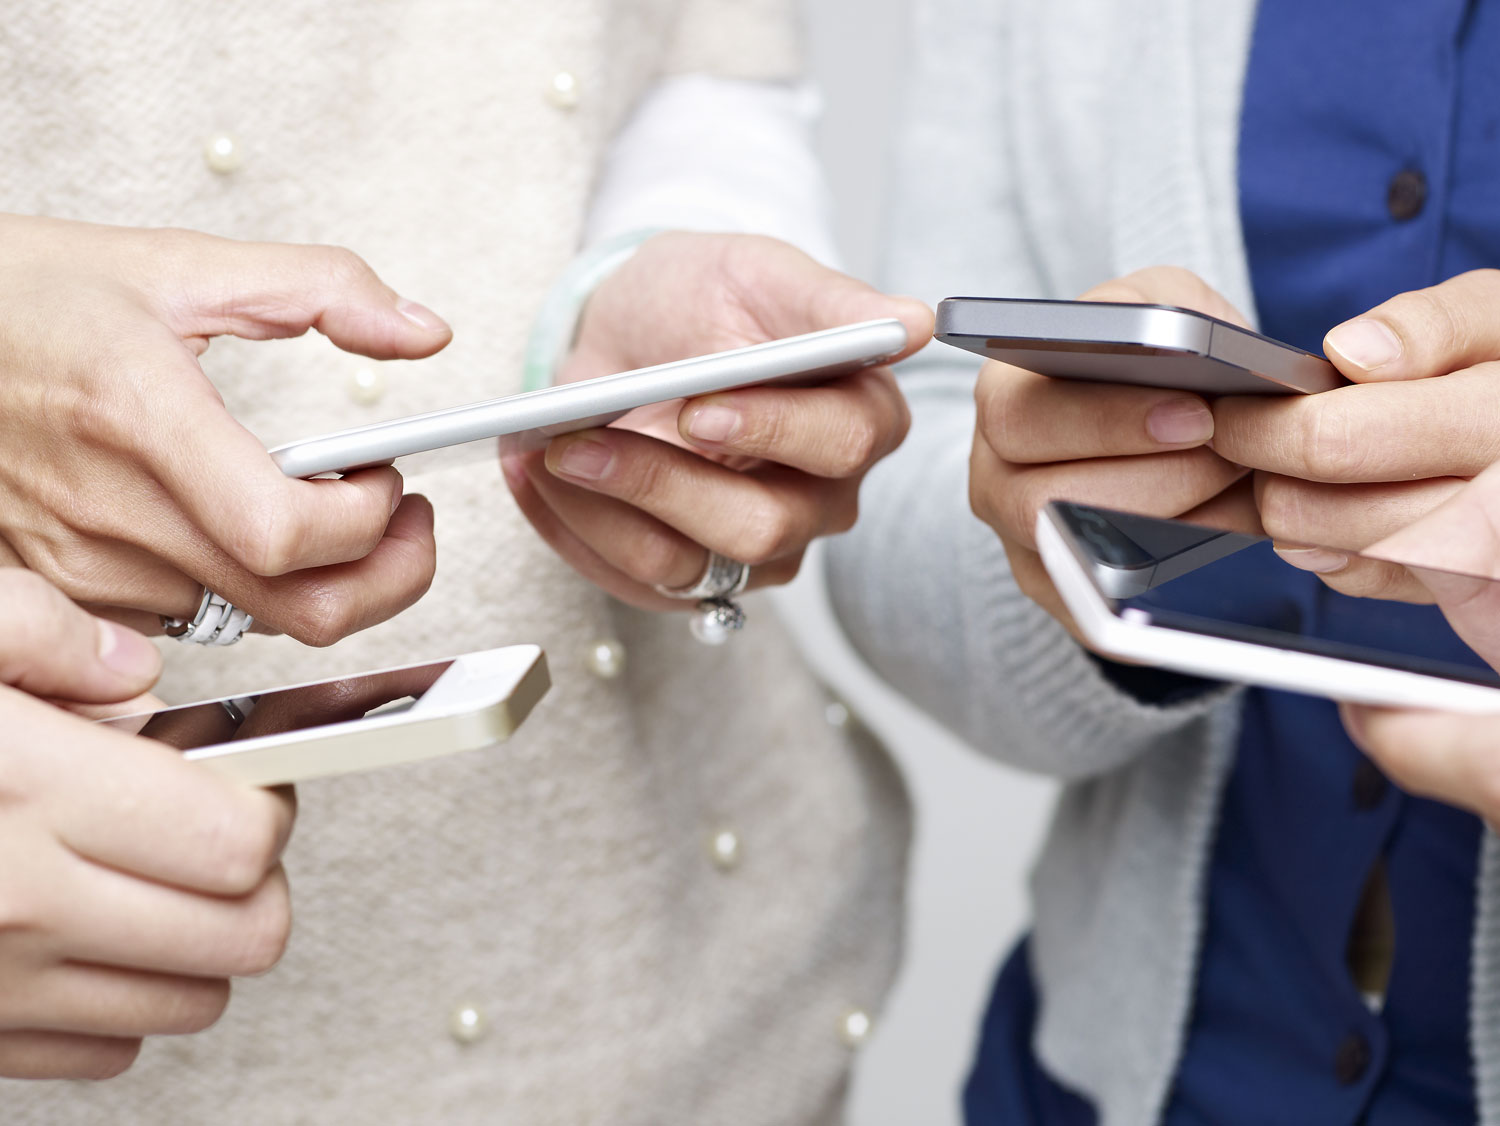 chinese ecommerce customer hands online shopping on mobile phone